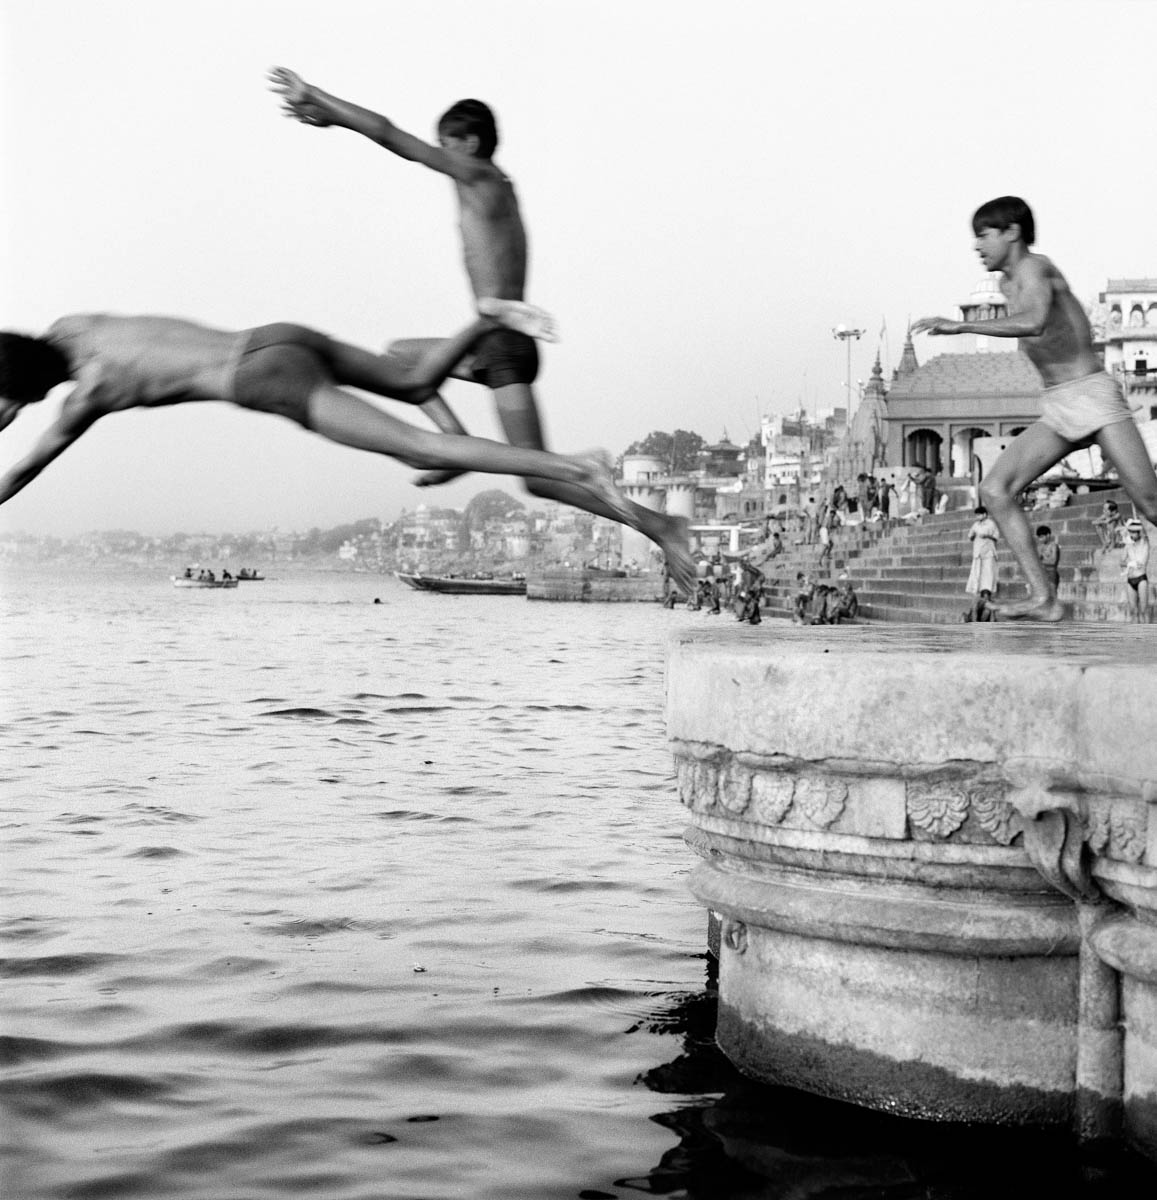 Boys Jumping into the Ocean